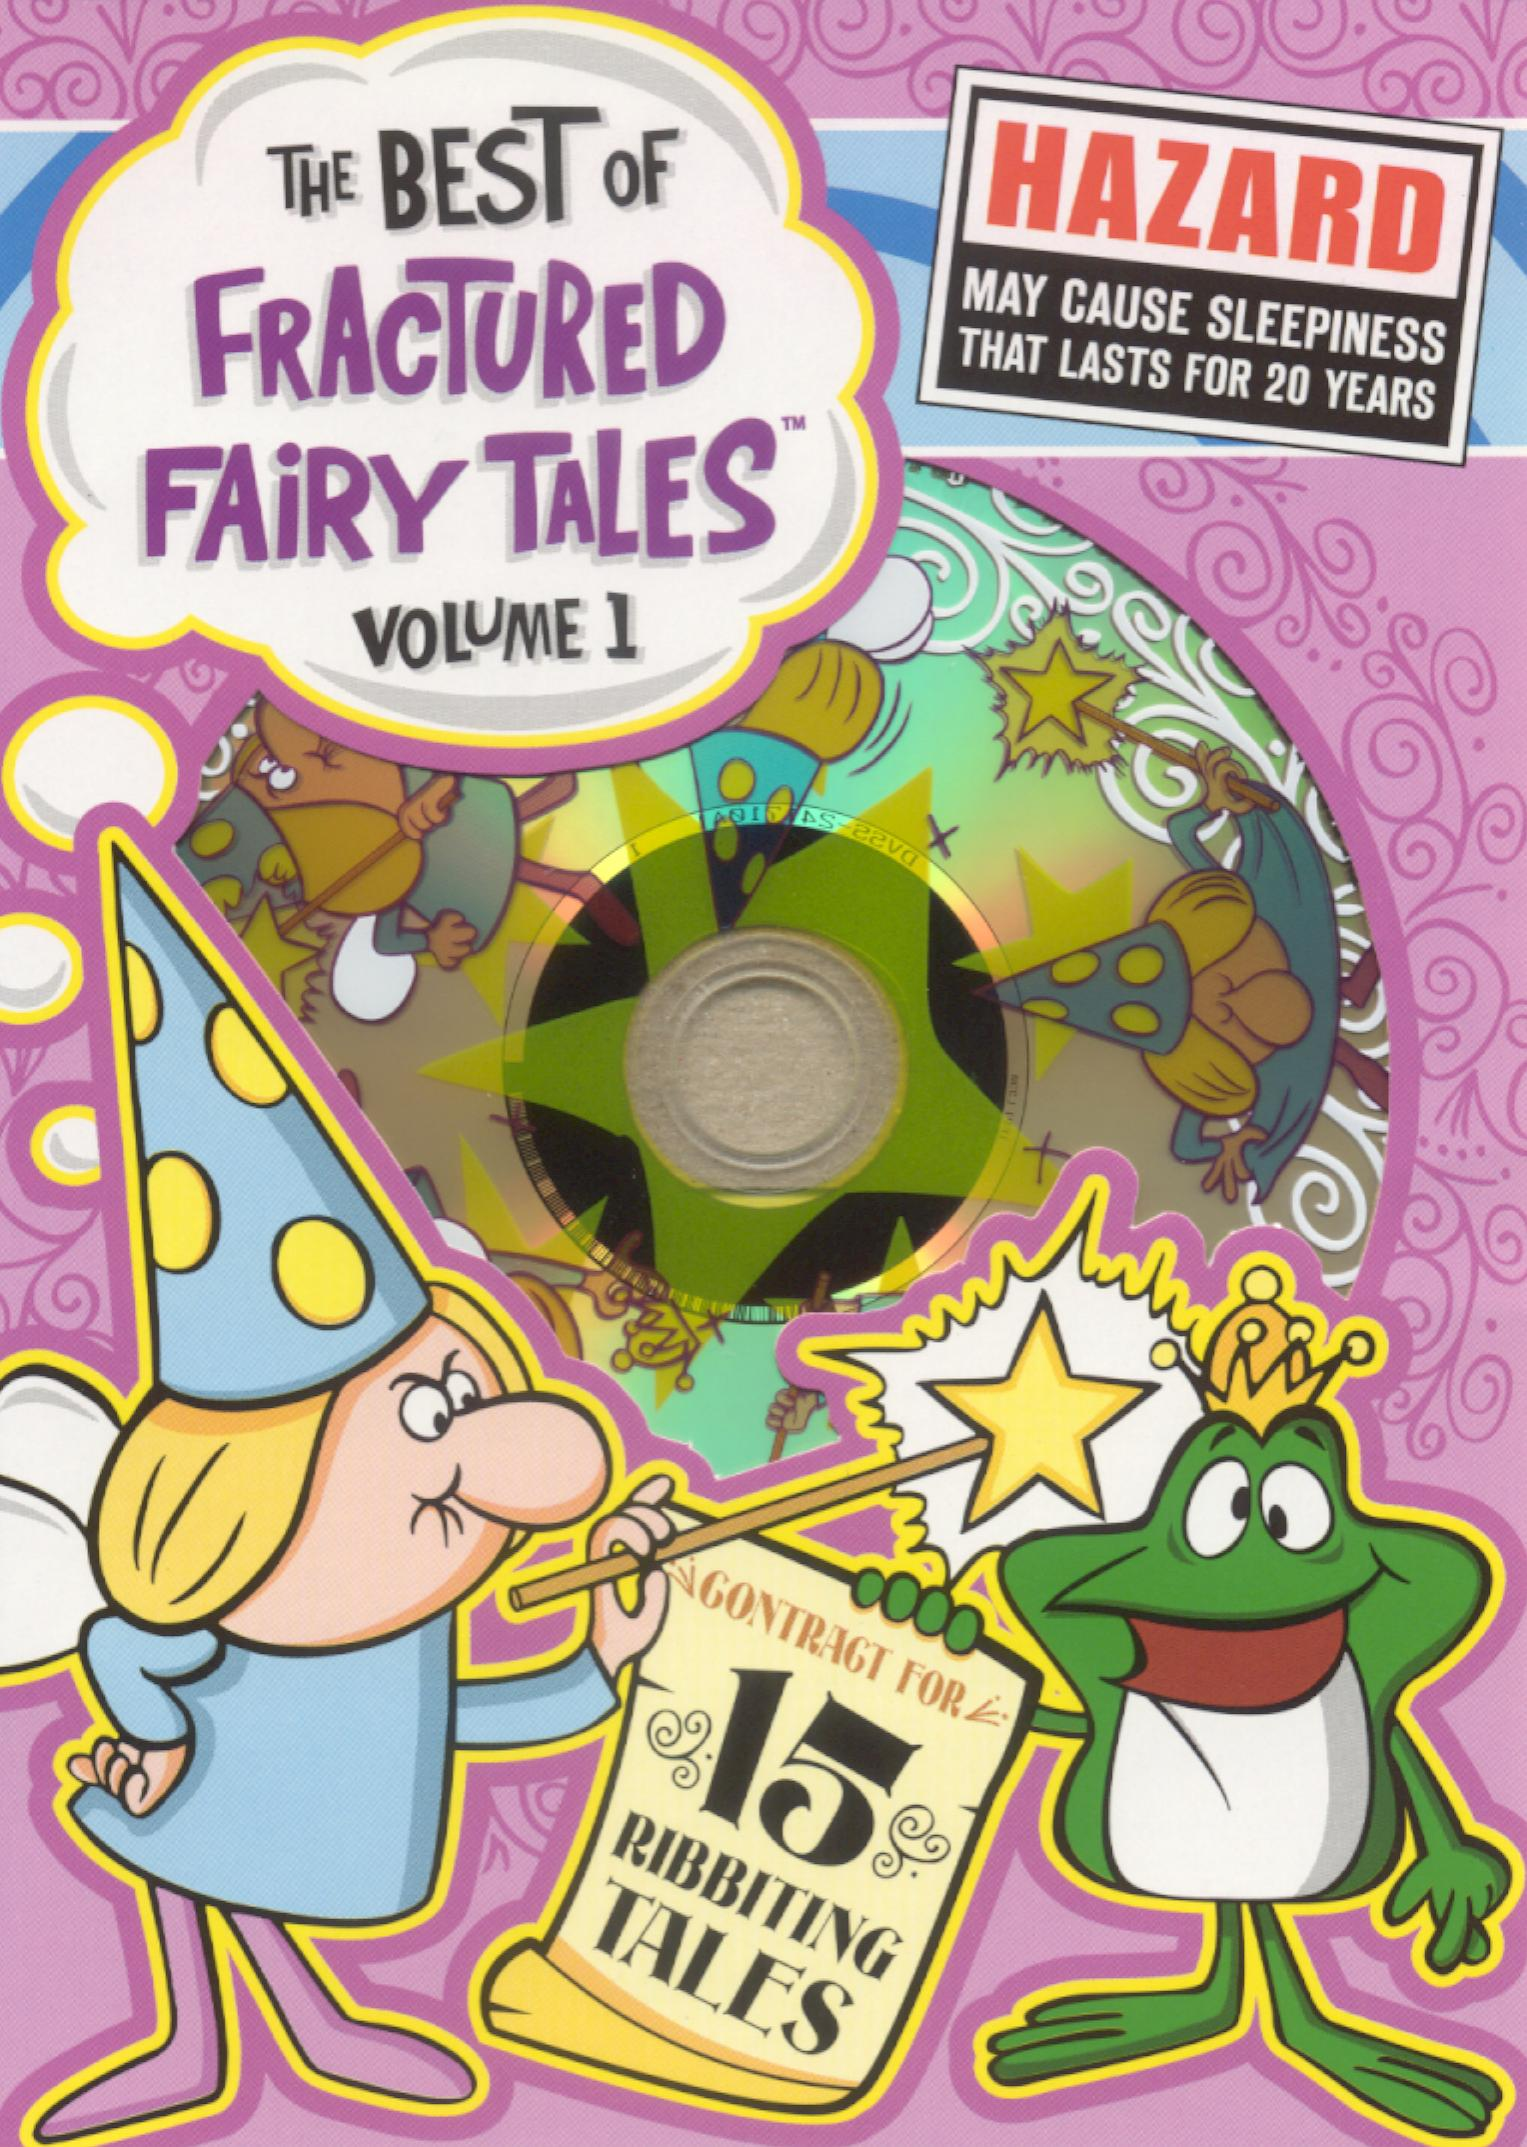 The Best of Fractured Fairy Tales, Vol. 1